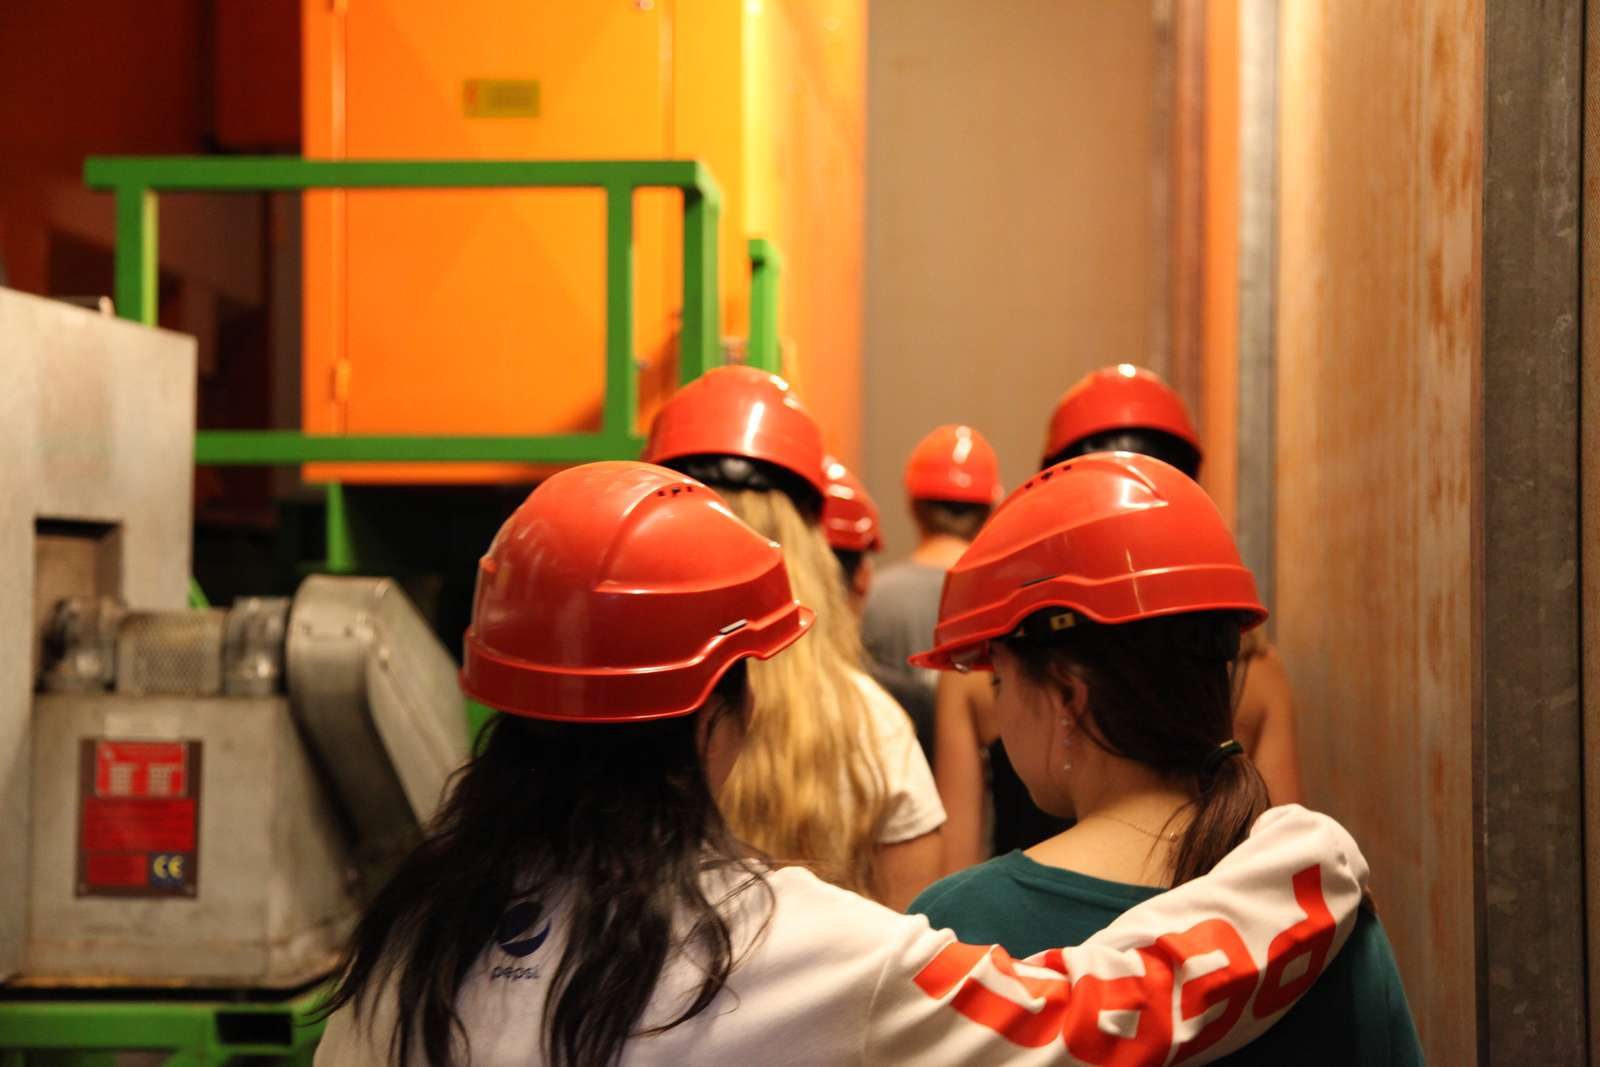 A group of students with helmets in an industrial complex, photographed from the rear. One student is hugging another student.